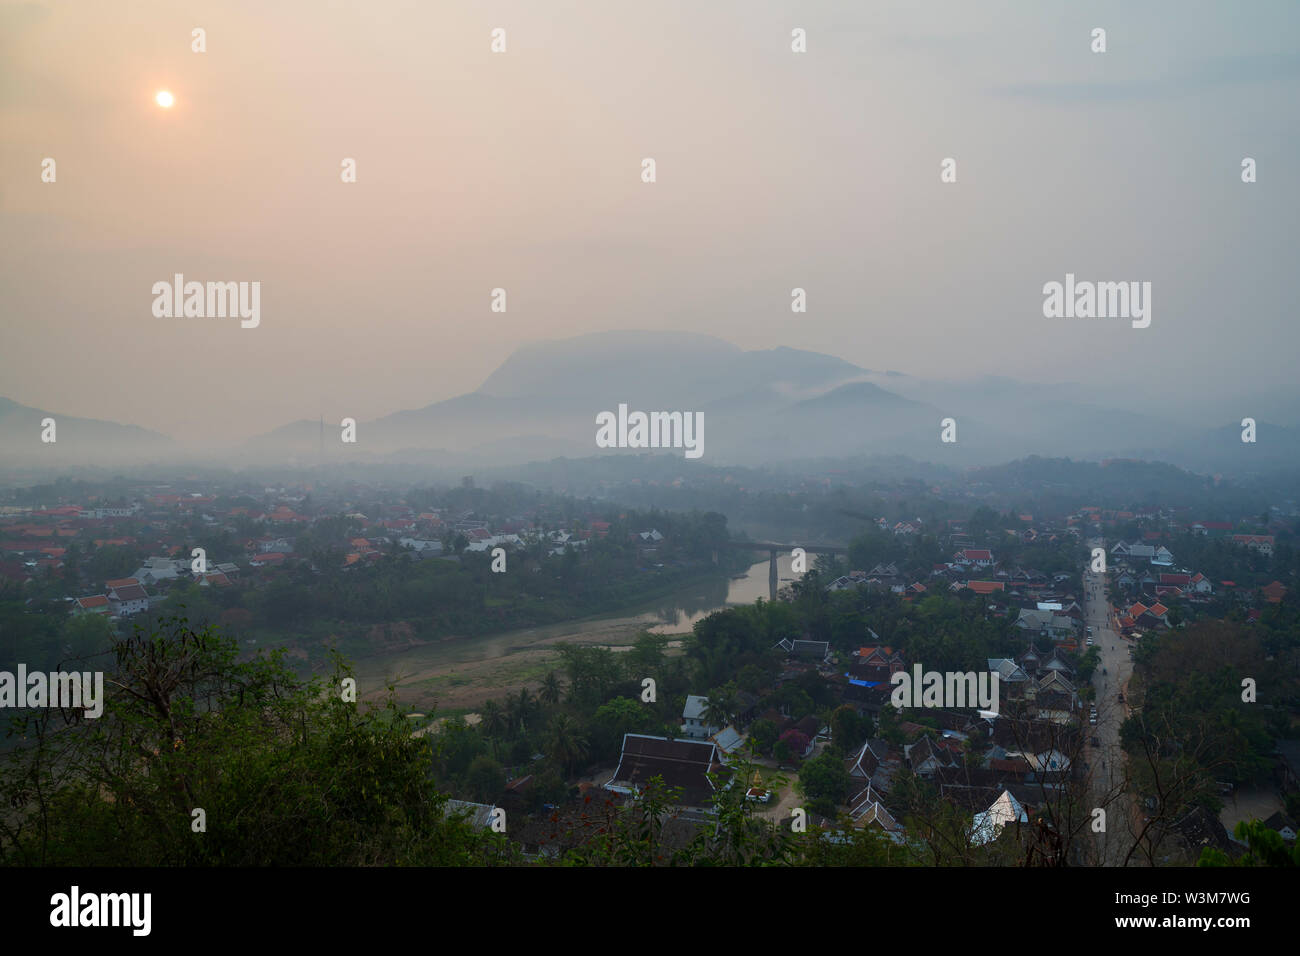 The city of Luang Prabang in Laos viewed from above from the Mount Phousi (Phou Si, Phusi, Phu Si) at sunrise. Copy space. Stock Photo